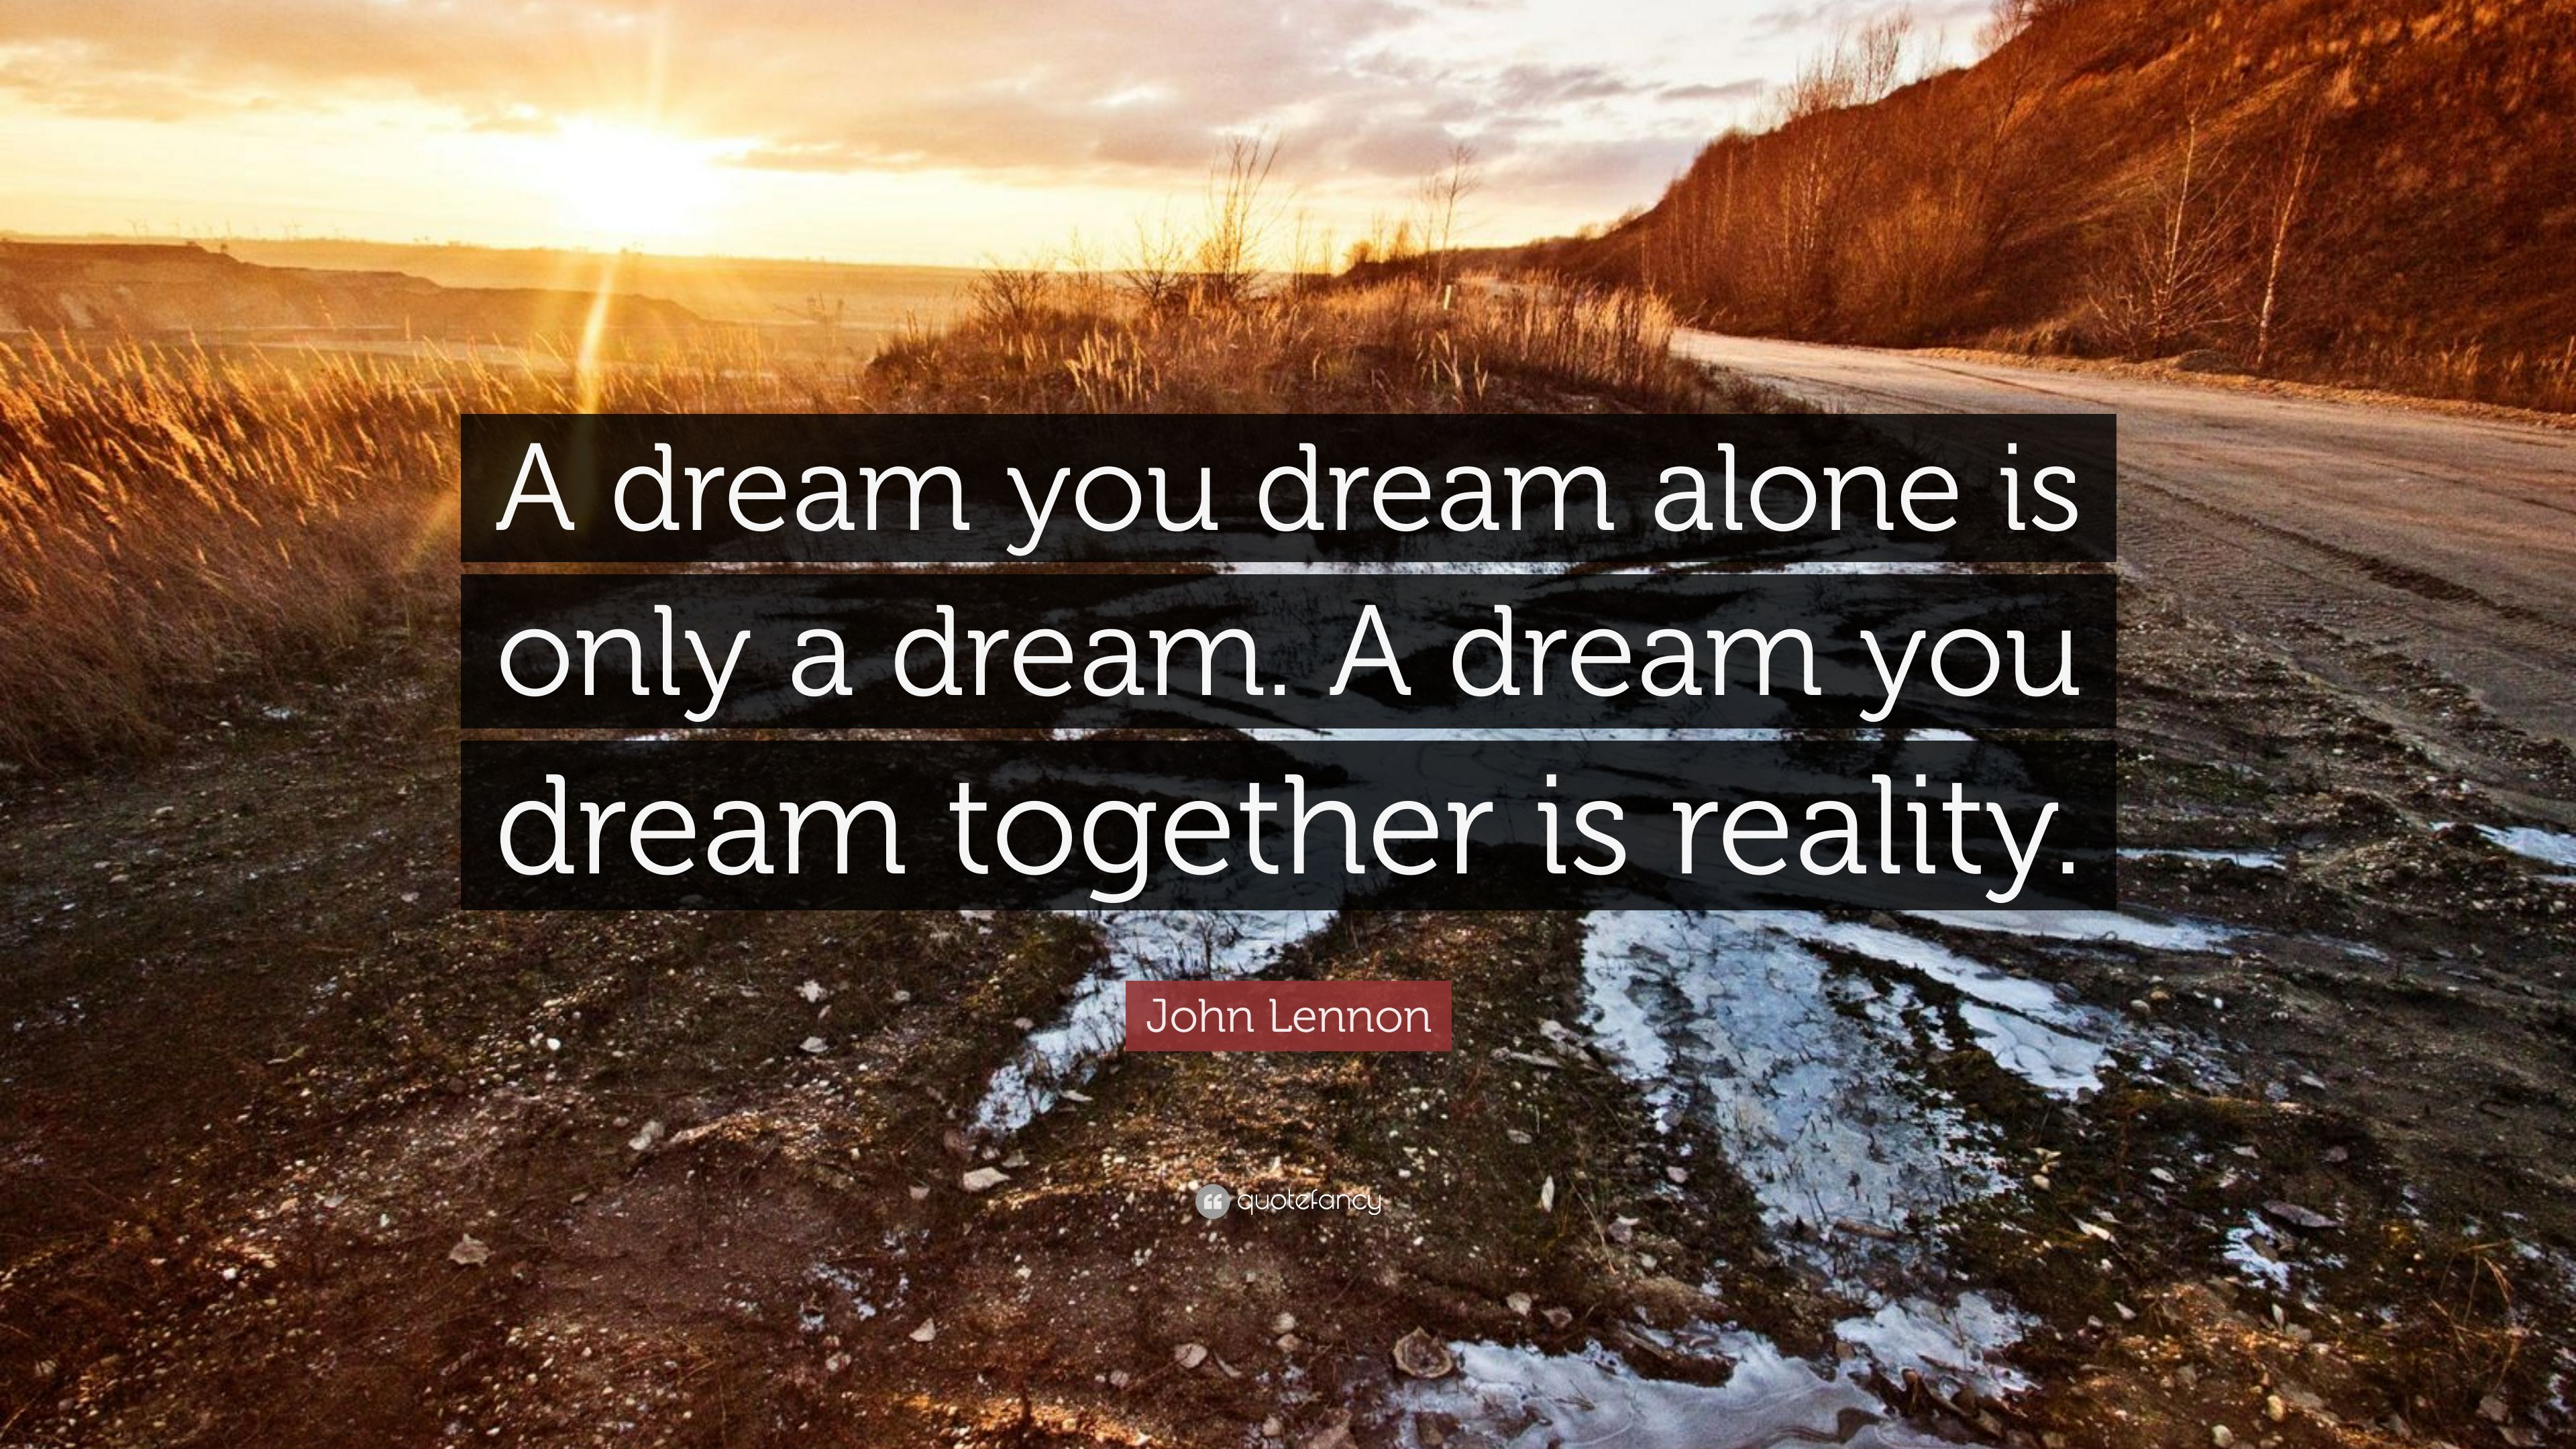 Nietzsche Quotes Wallpaper John Lennon Quote A Dream You Dream Alone Is Only A